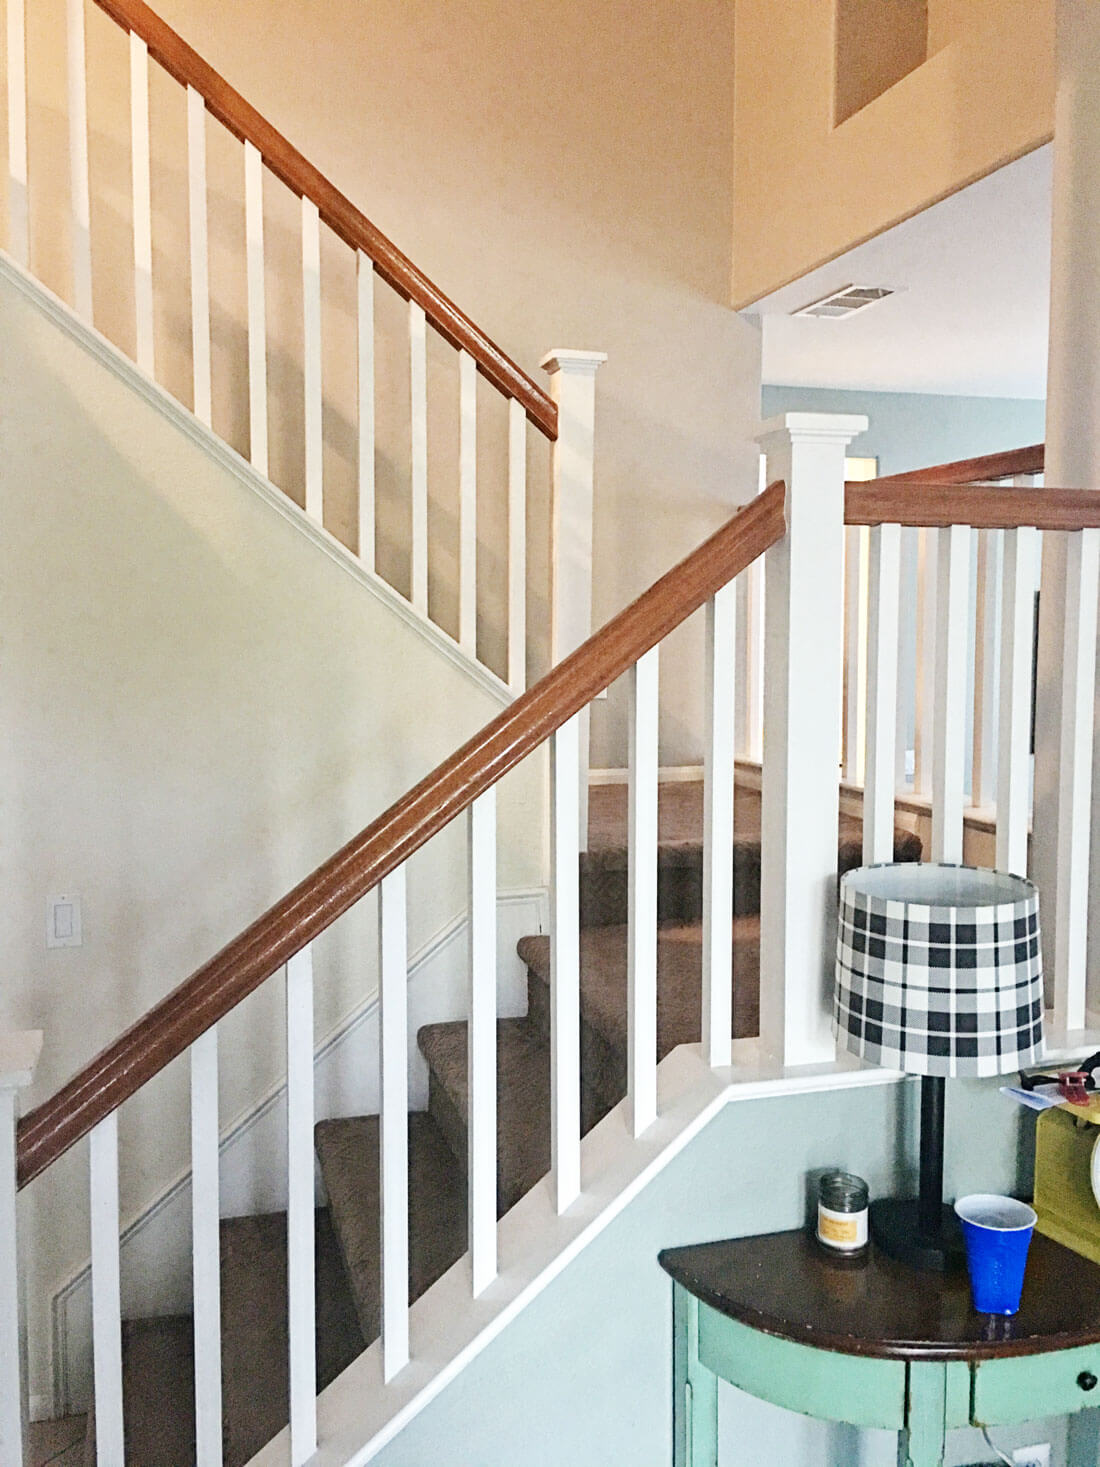 How to paint your stair railings and banister -the before